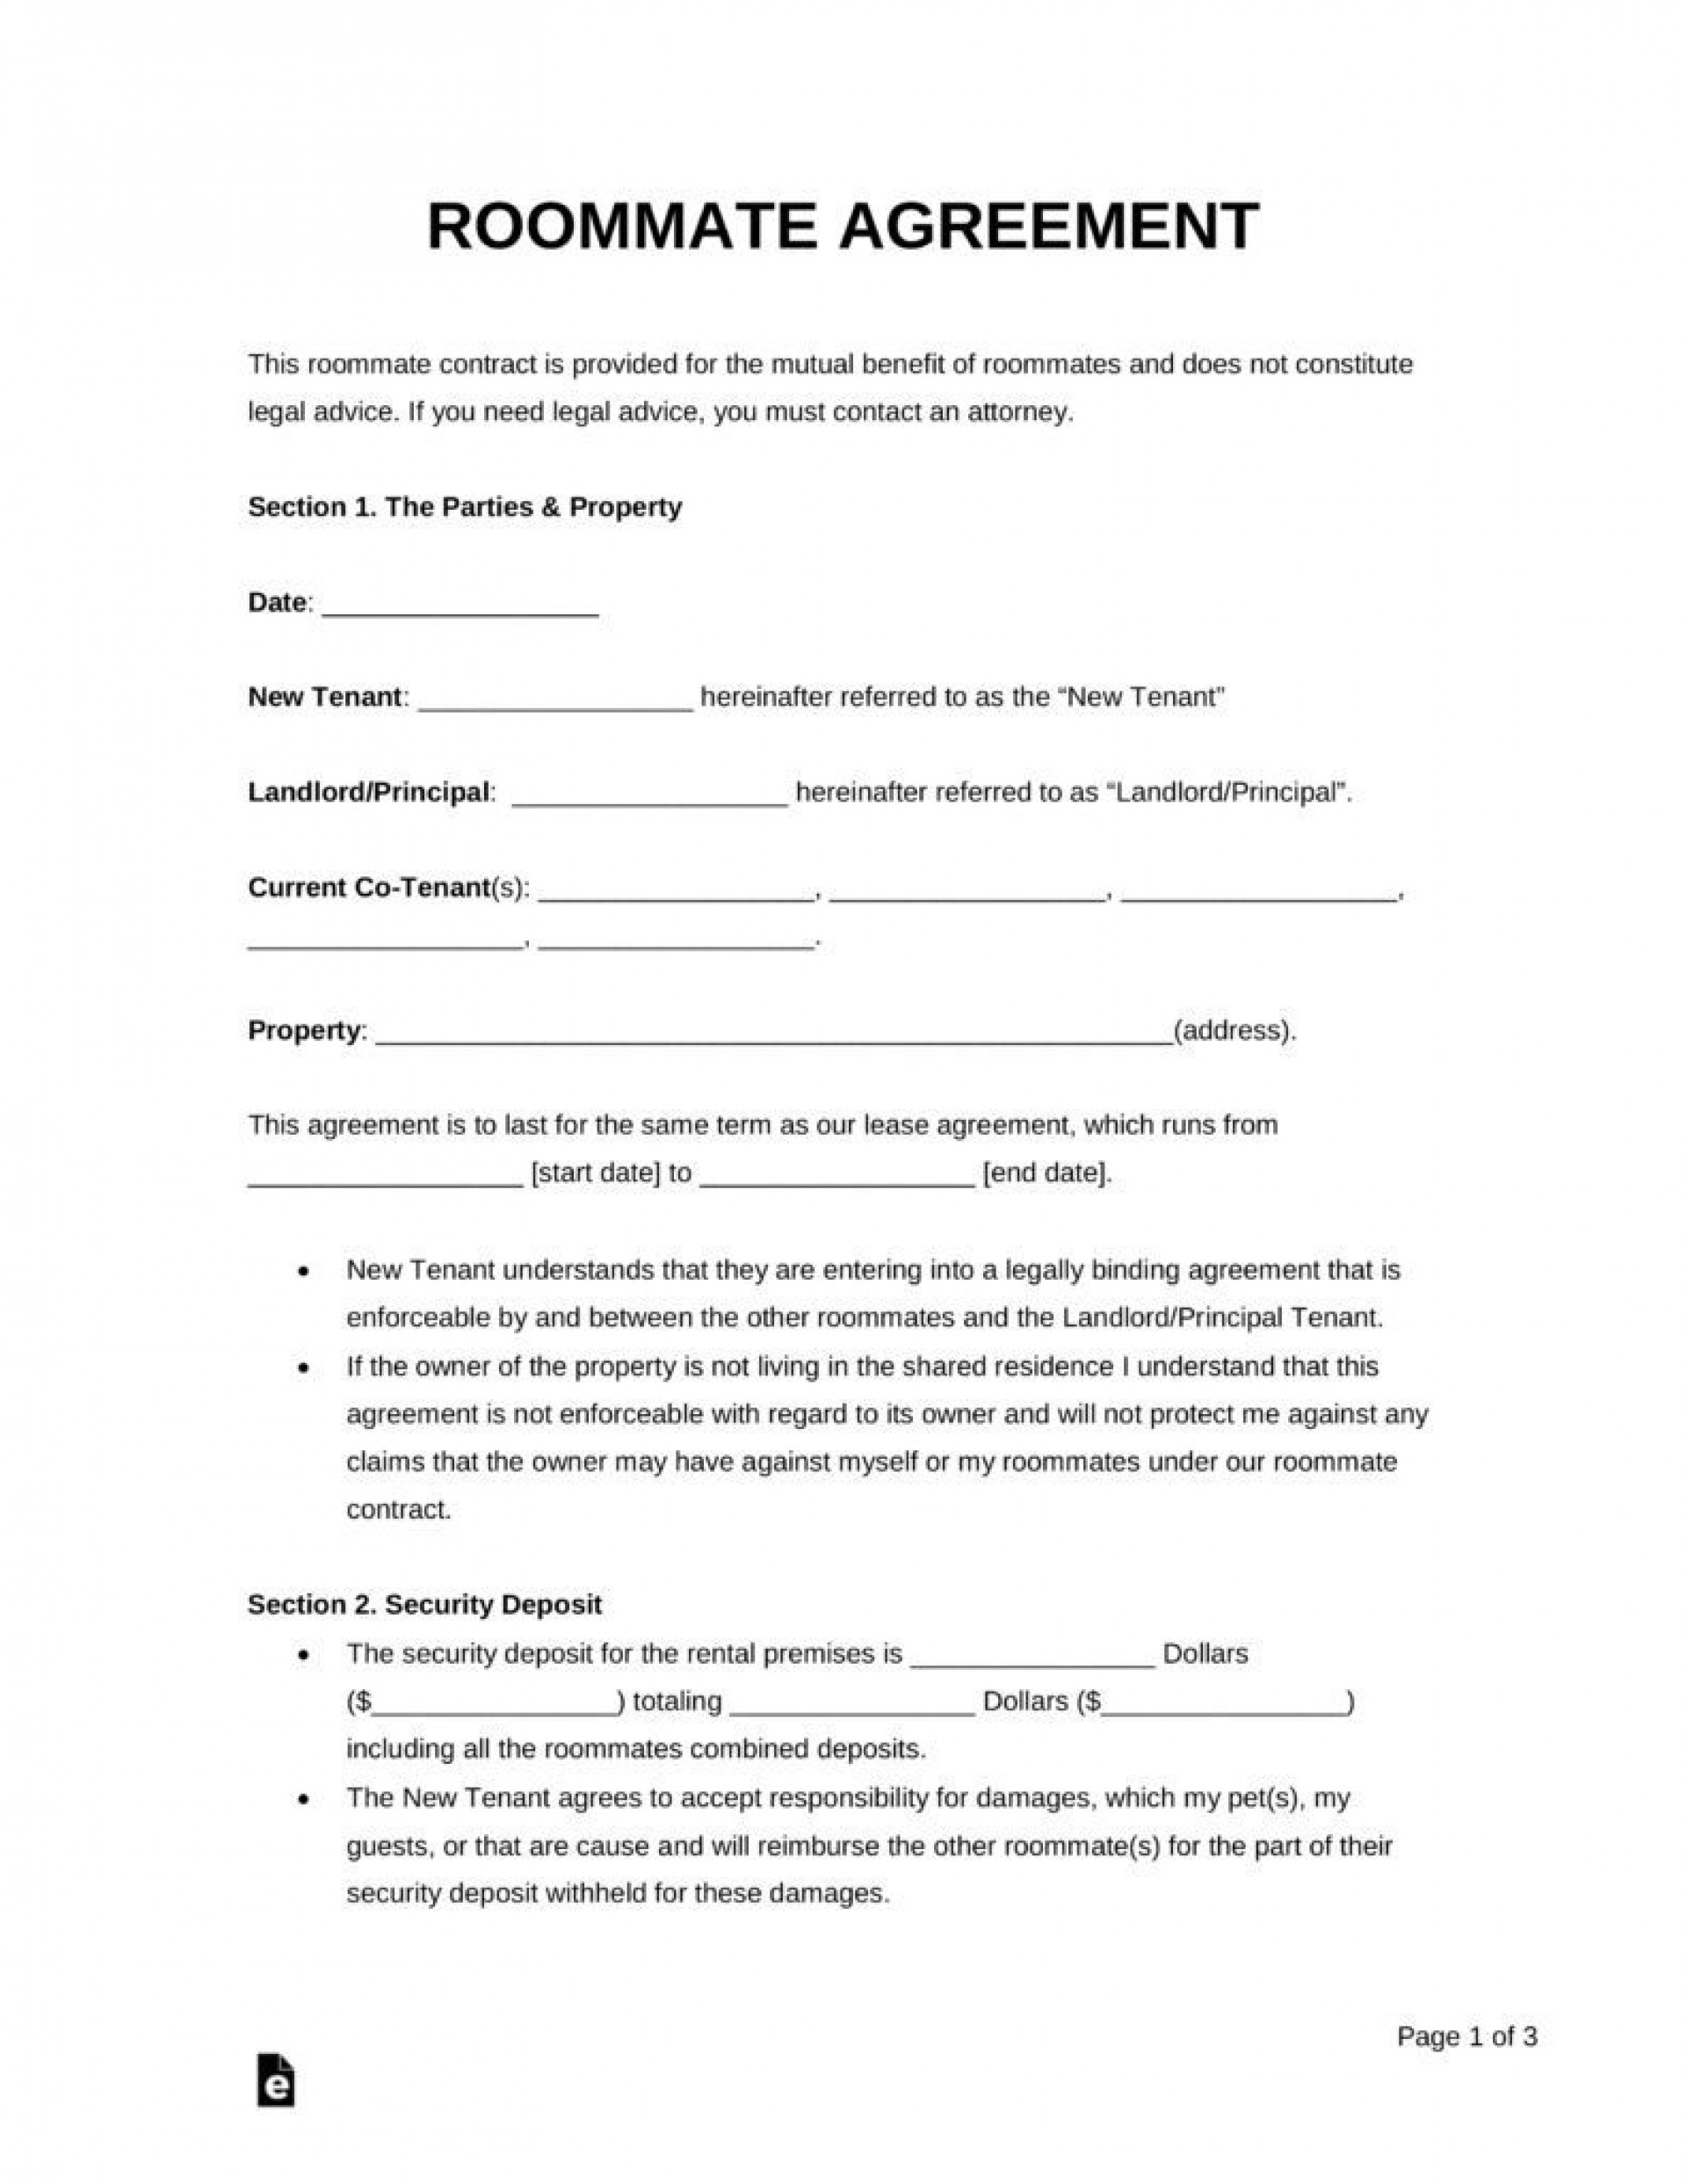 000 Fascinating Roommate Rental Agreement Template High Definition  Form Free Contract1920